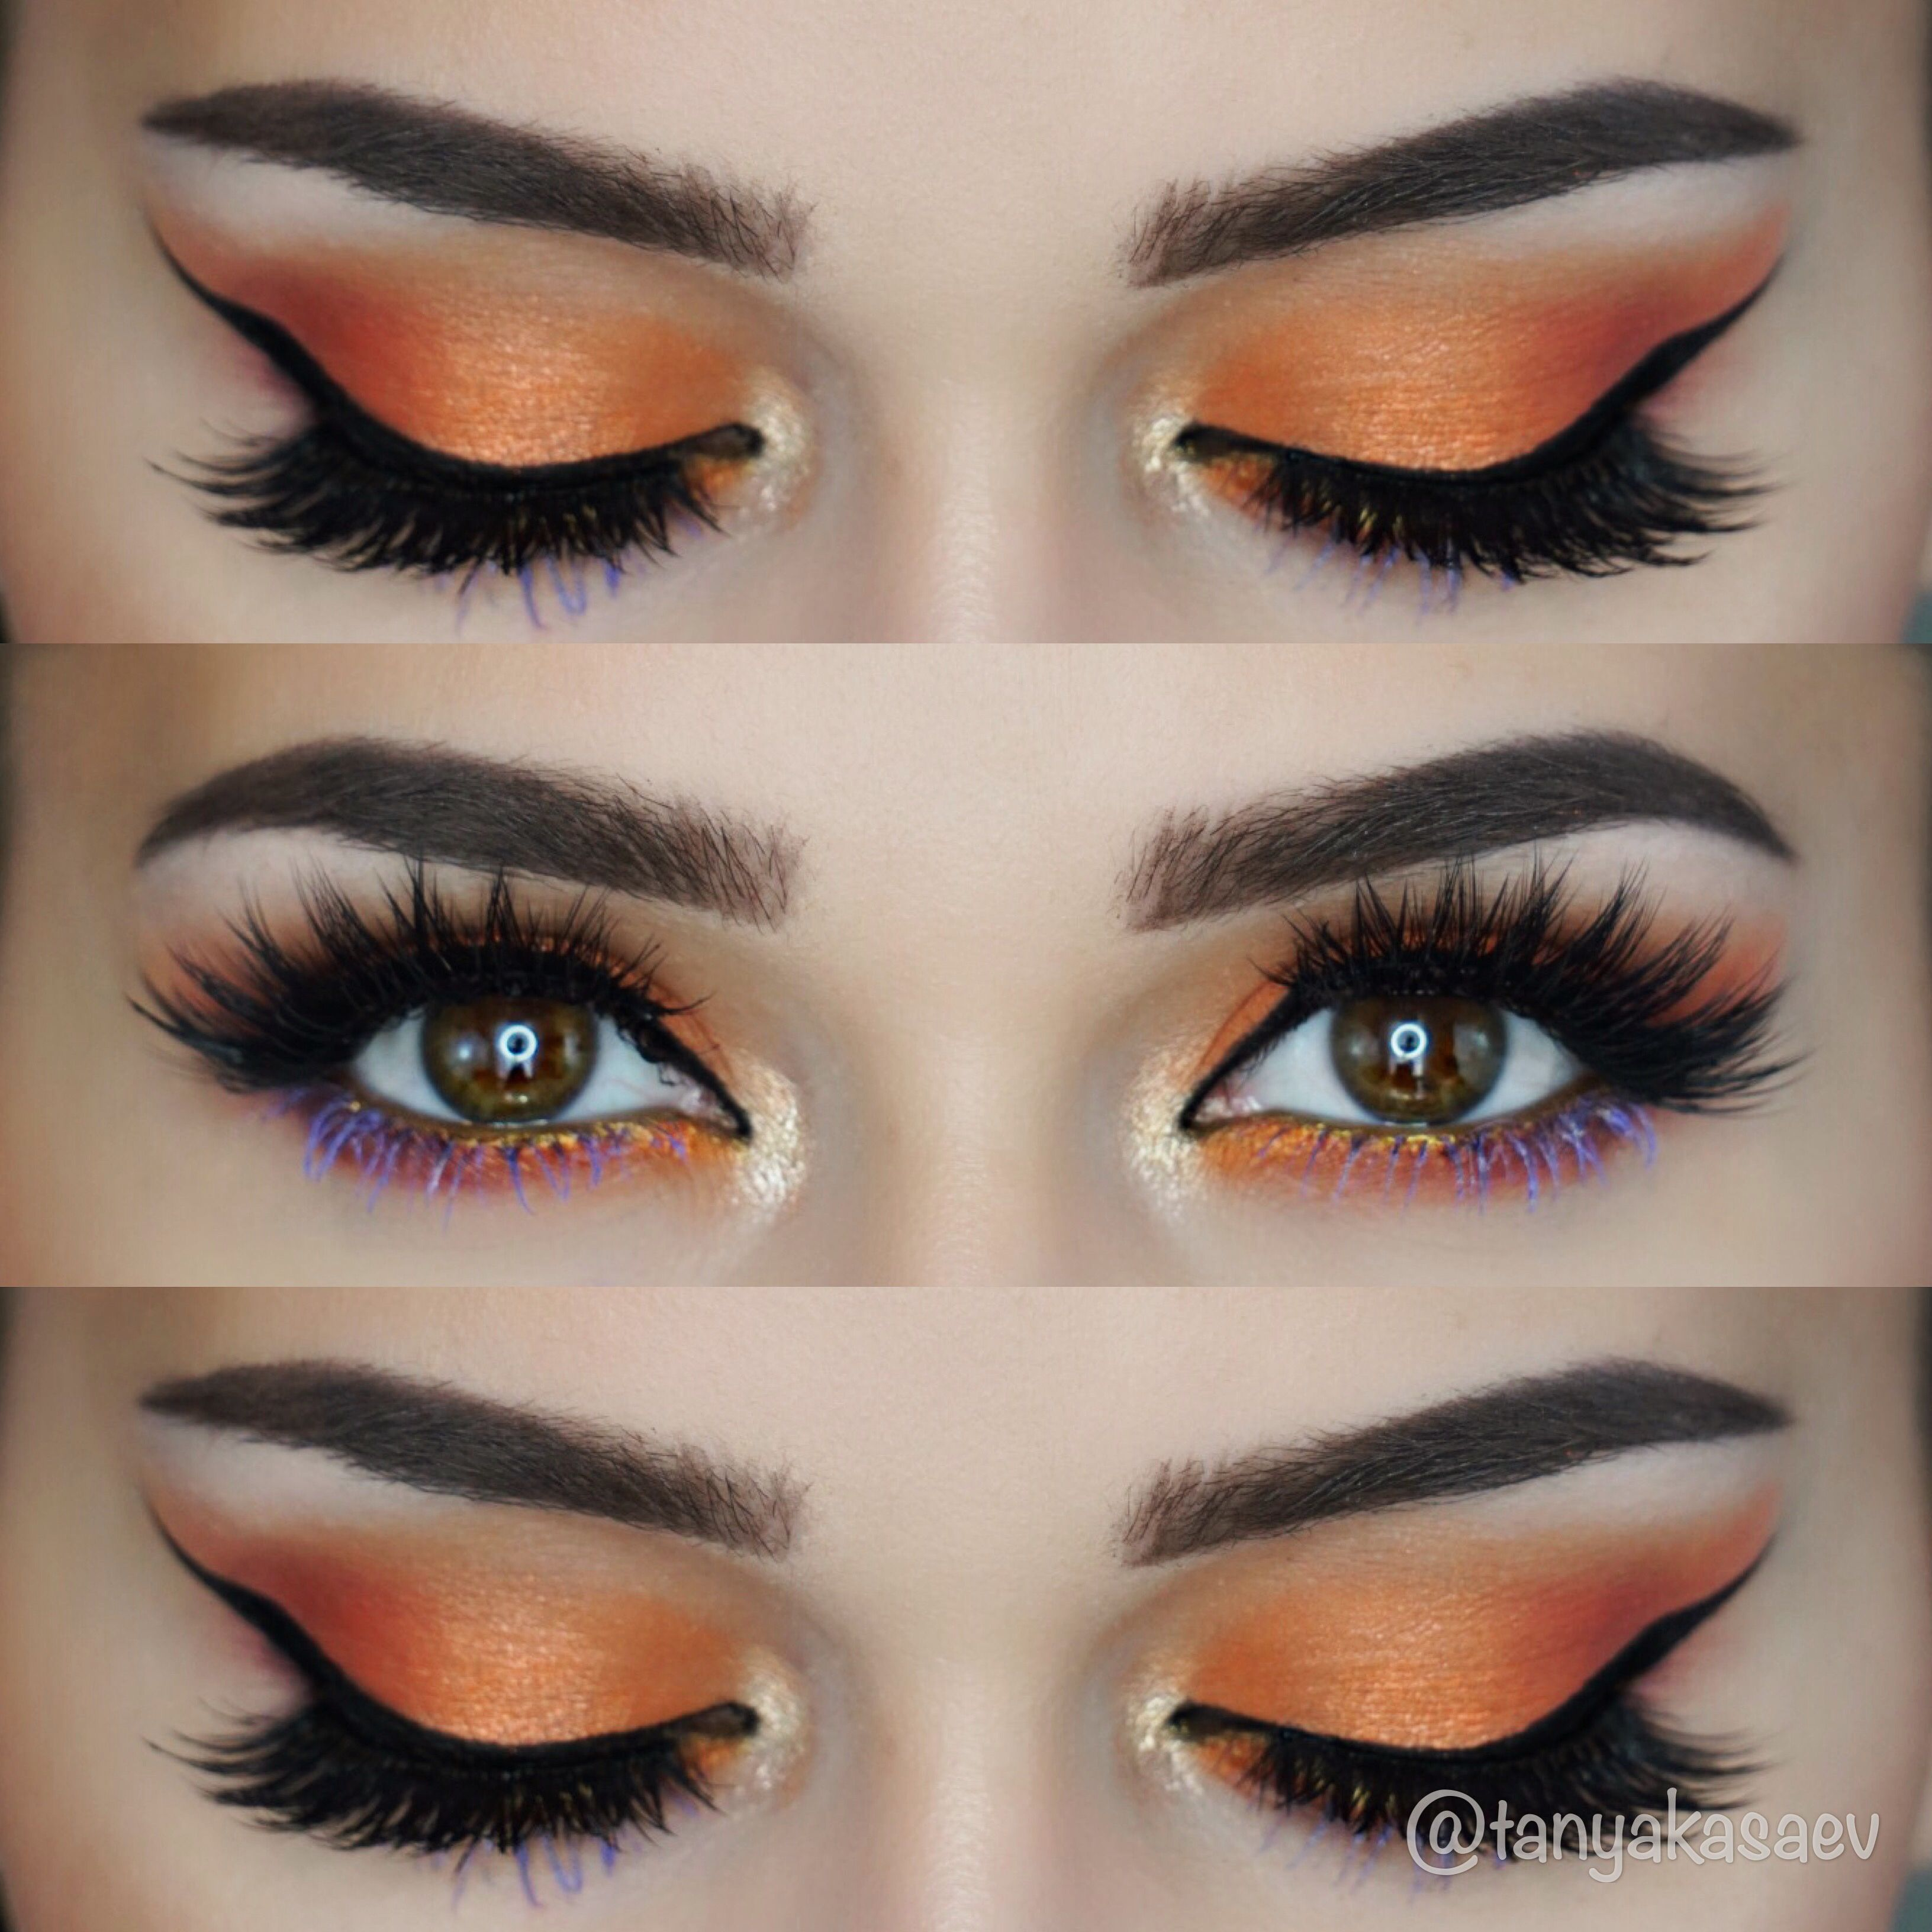 Makeup simple ideas for brown eyes recommendations to wear for autumn in 2019